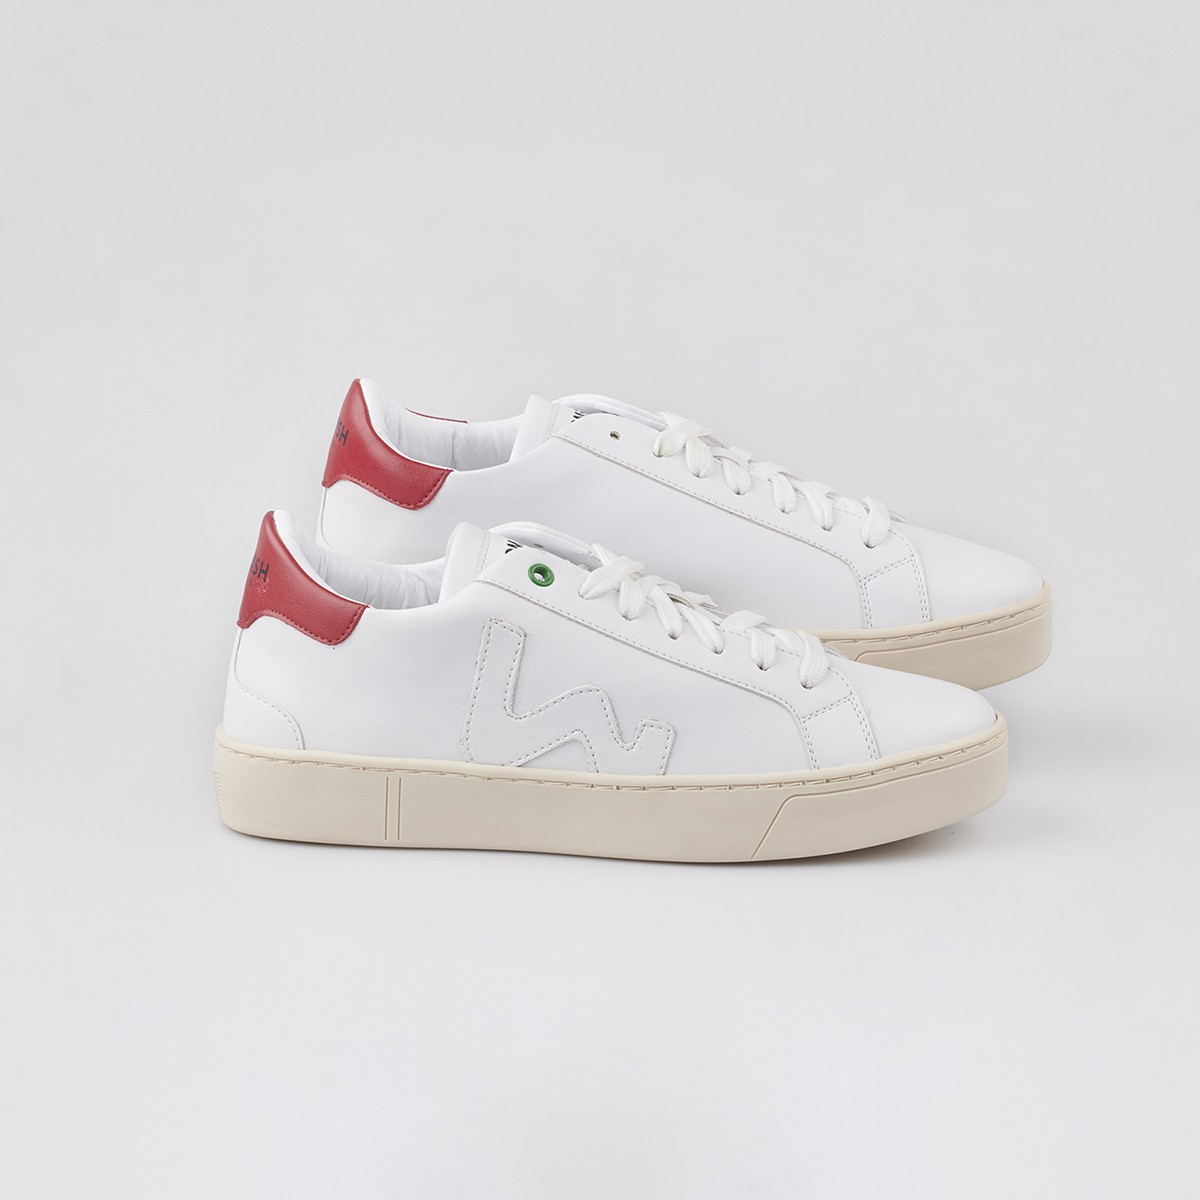 VEGAN SNIK WHITE RED / UNISEX